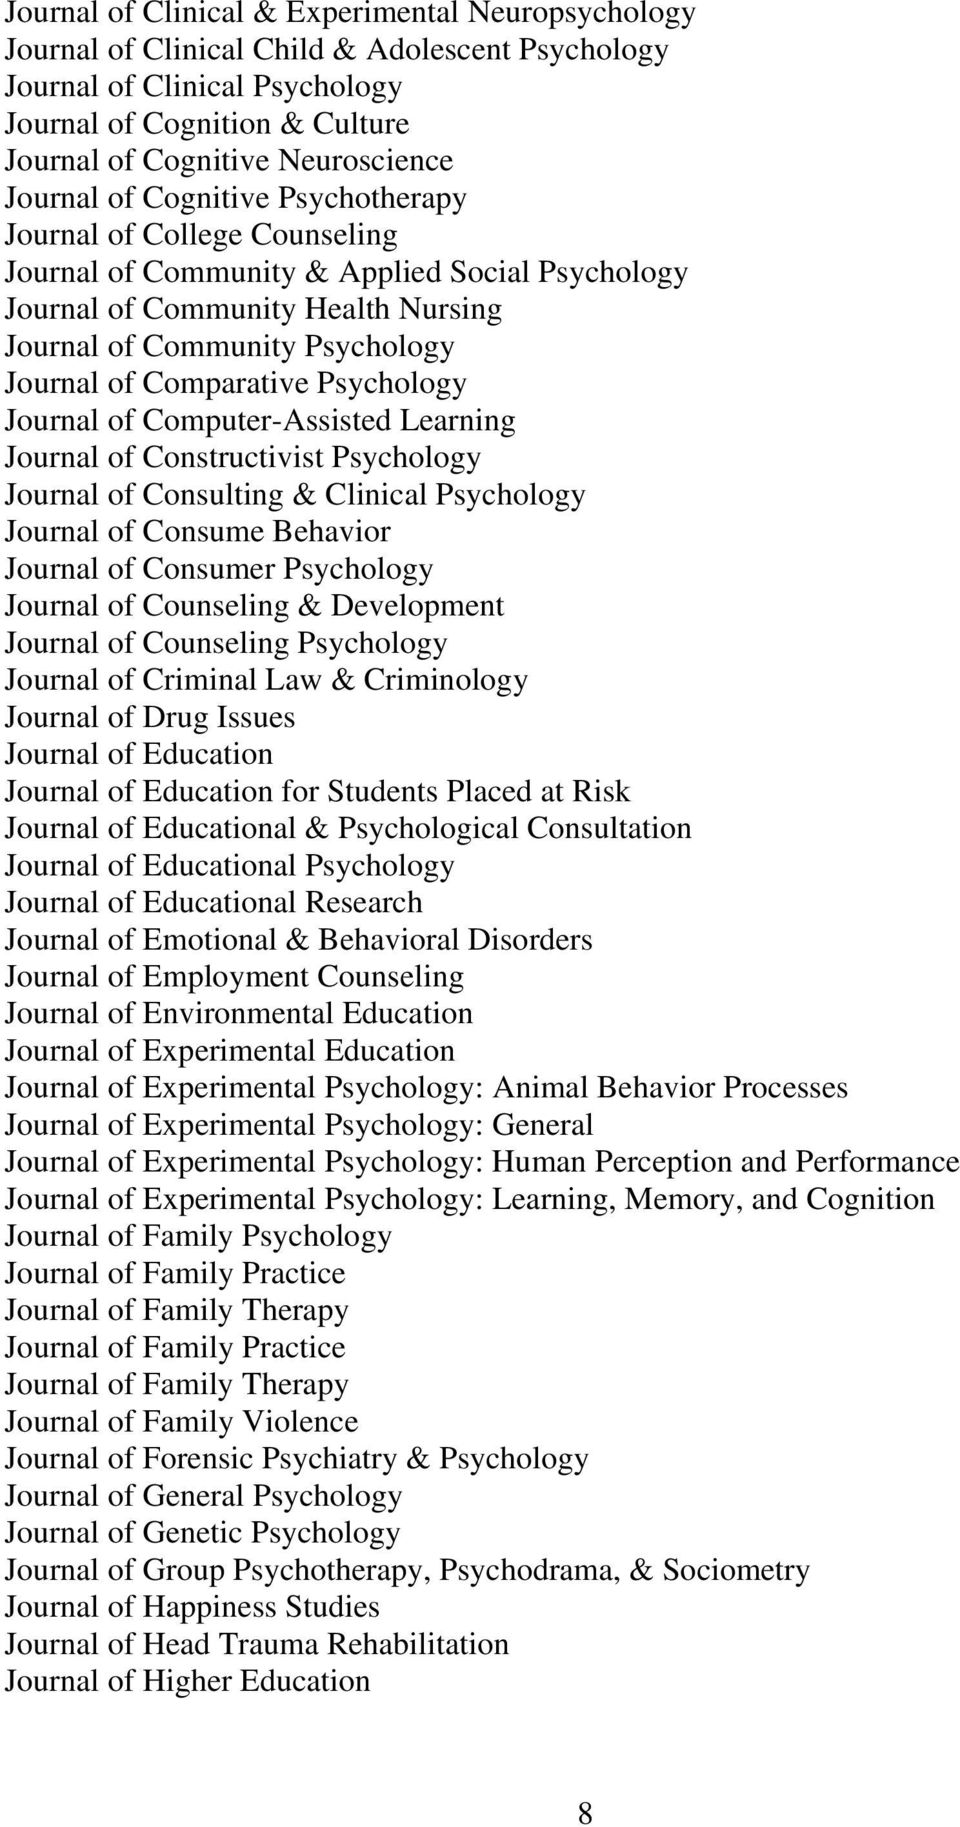 Comparative Psychology Journal of Computer-Assisted Learning Journal of Constructivist Psychology Journal of Consulting & Clinical Psychology Journal of Consume Behavior Journal of Consumer